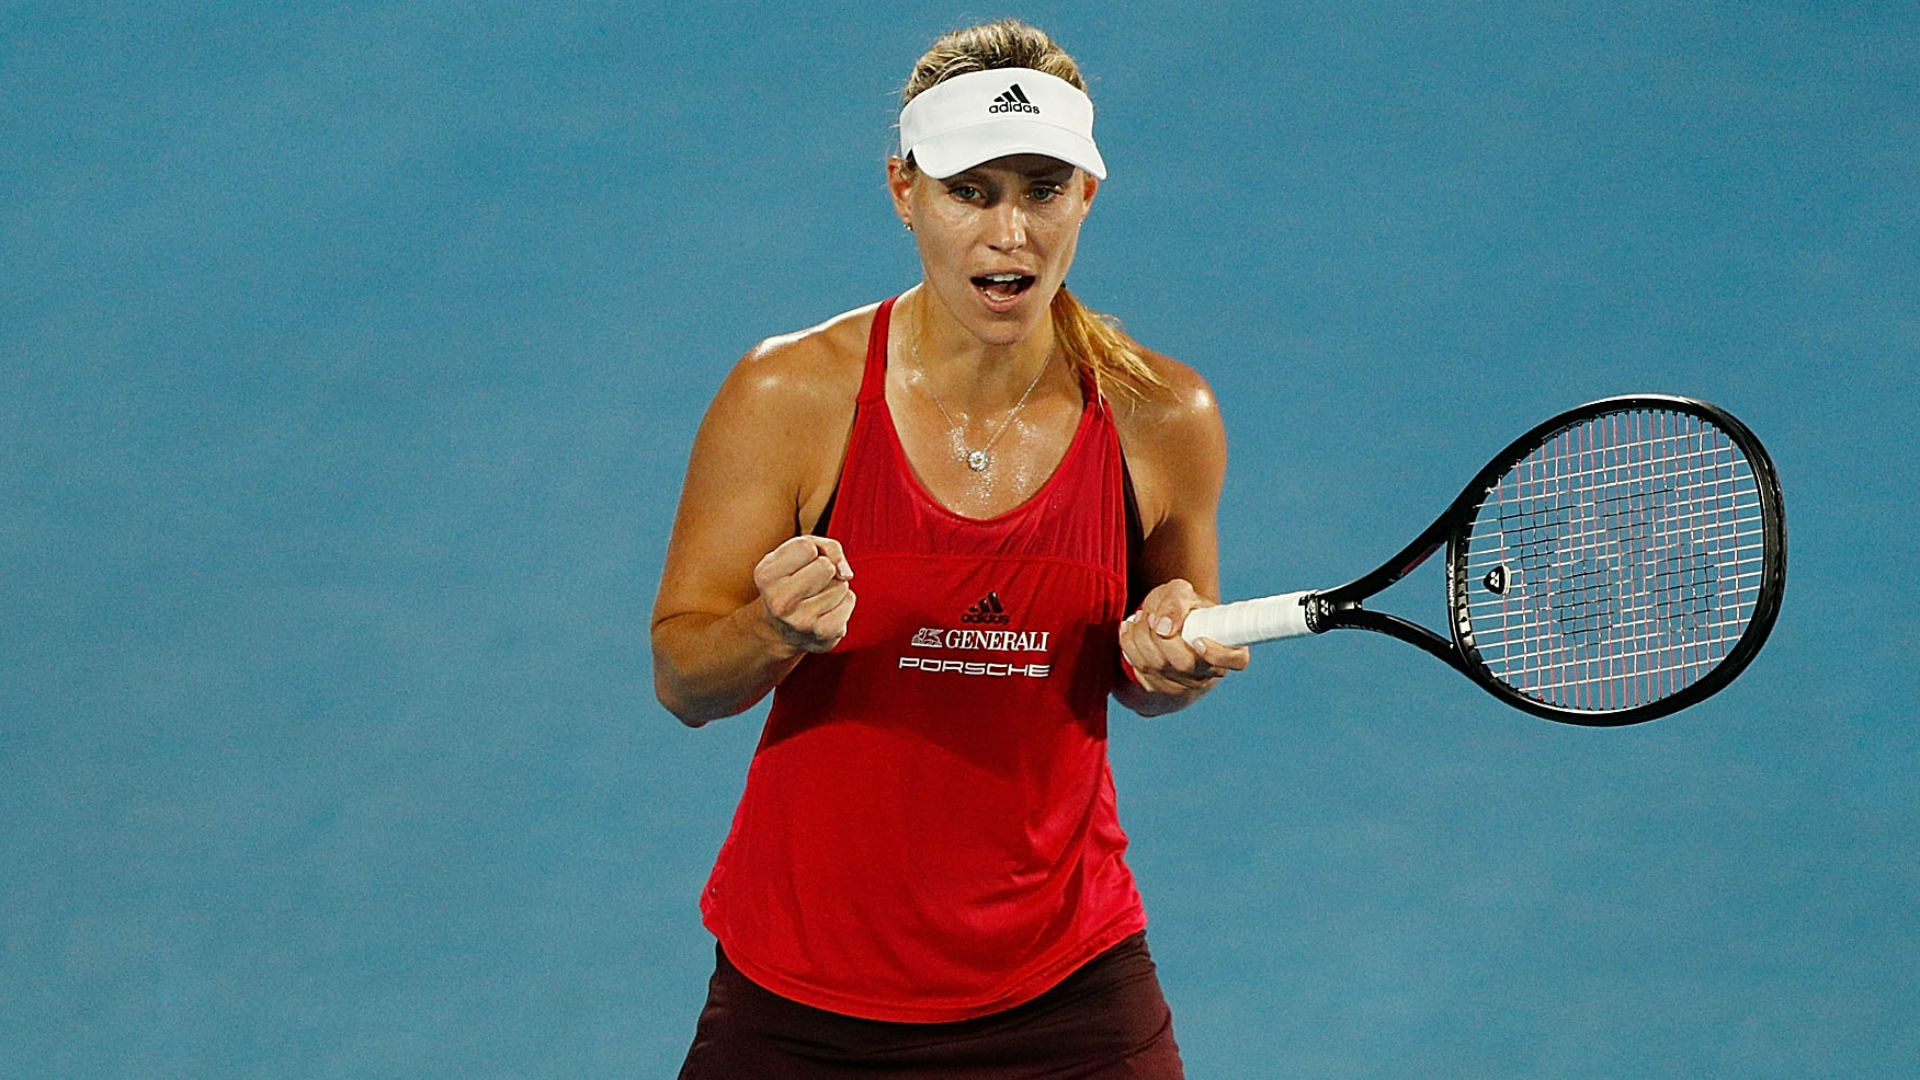 Kerber marches on in Sydney, Muller beaten by Paire